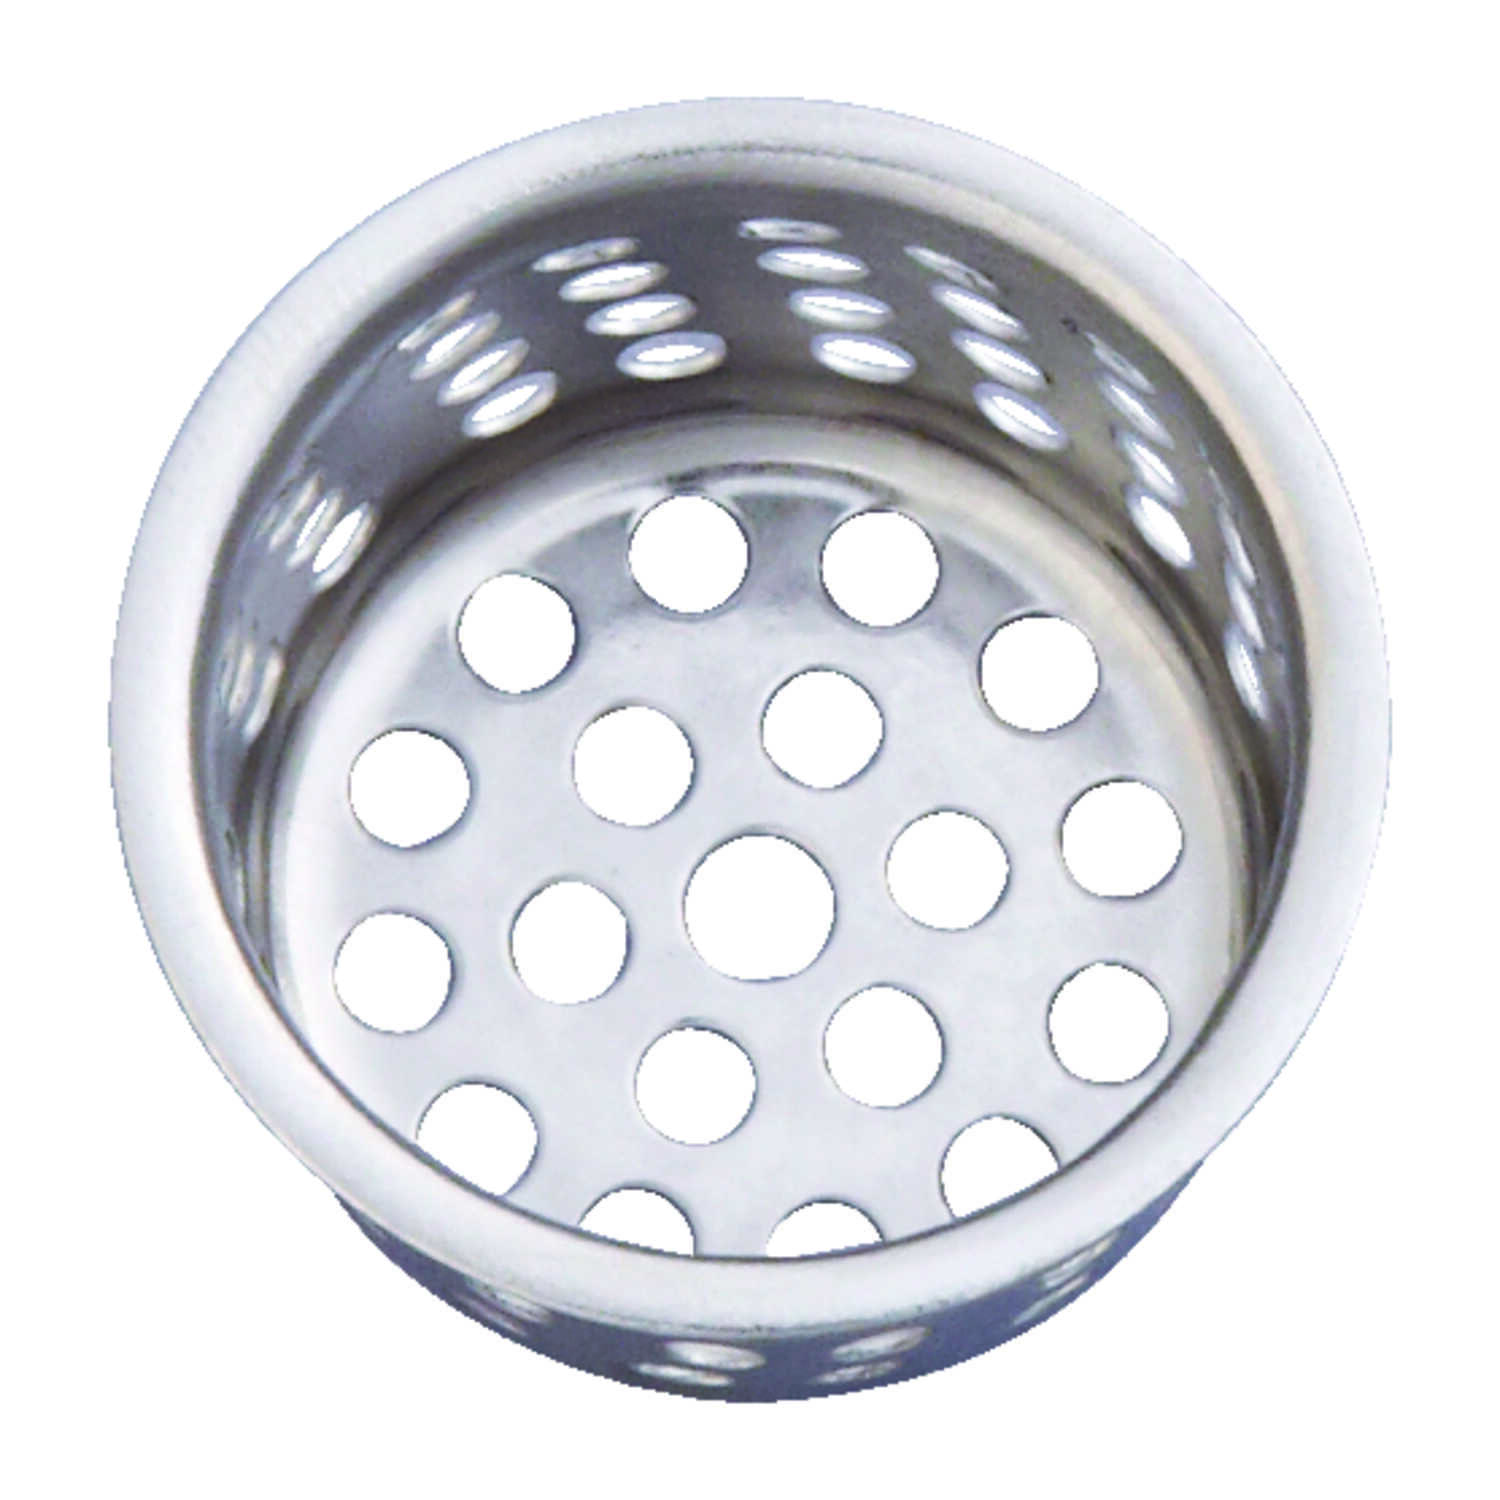 Ace  1 in. Dia. Chrome  Replacement Strainer Basket